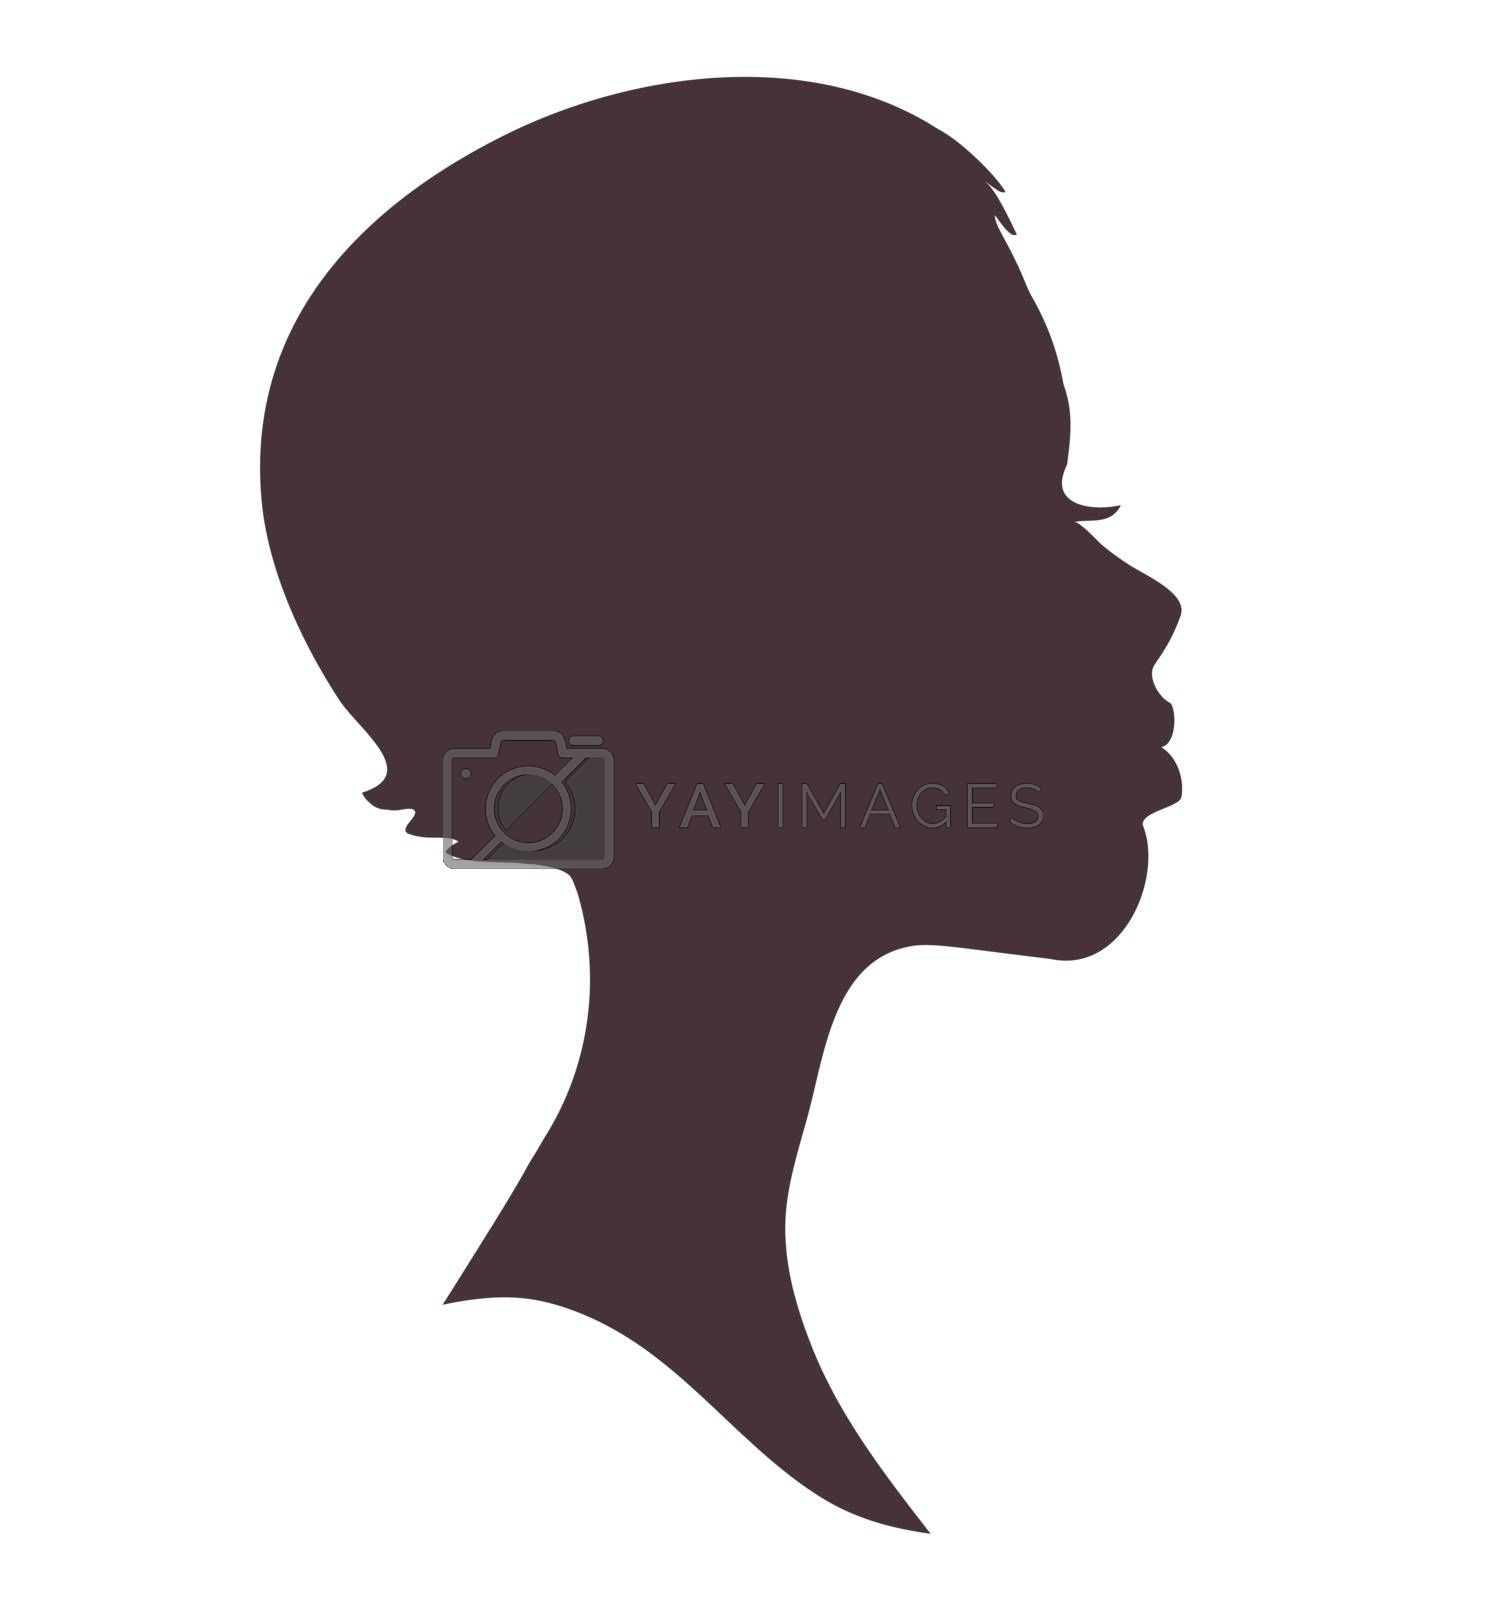 Girl face silhouette. Pretty african woman with short hair and modern hairstyle.